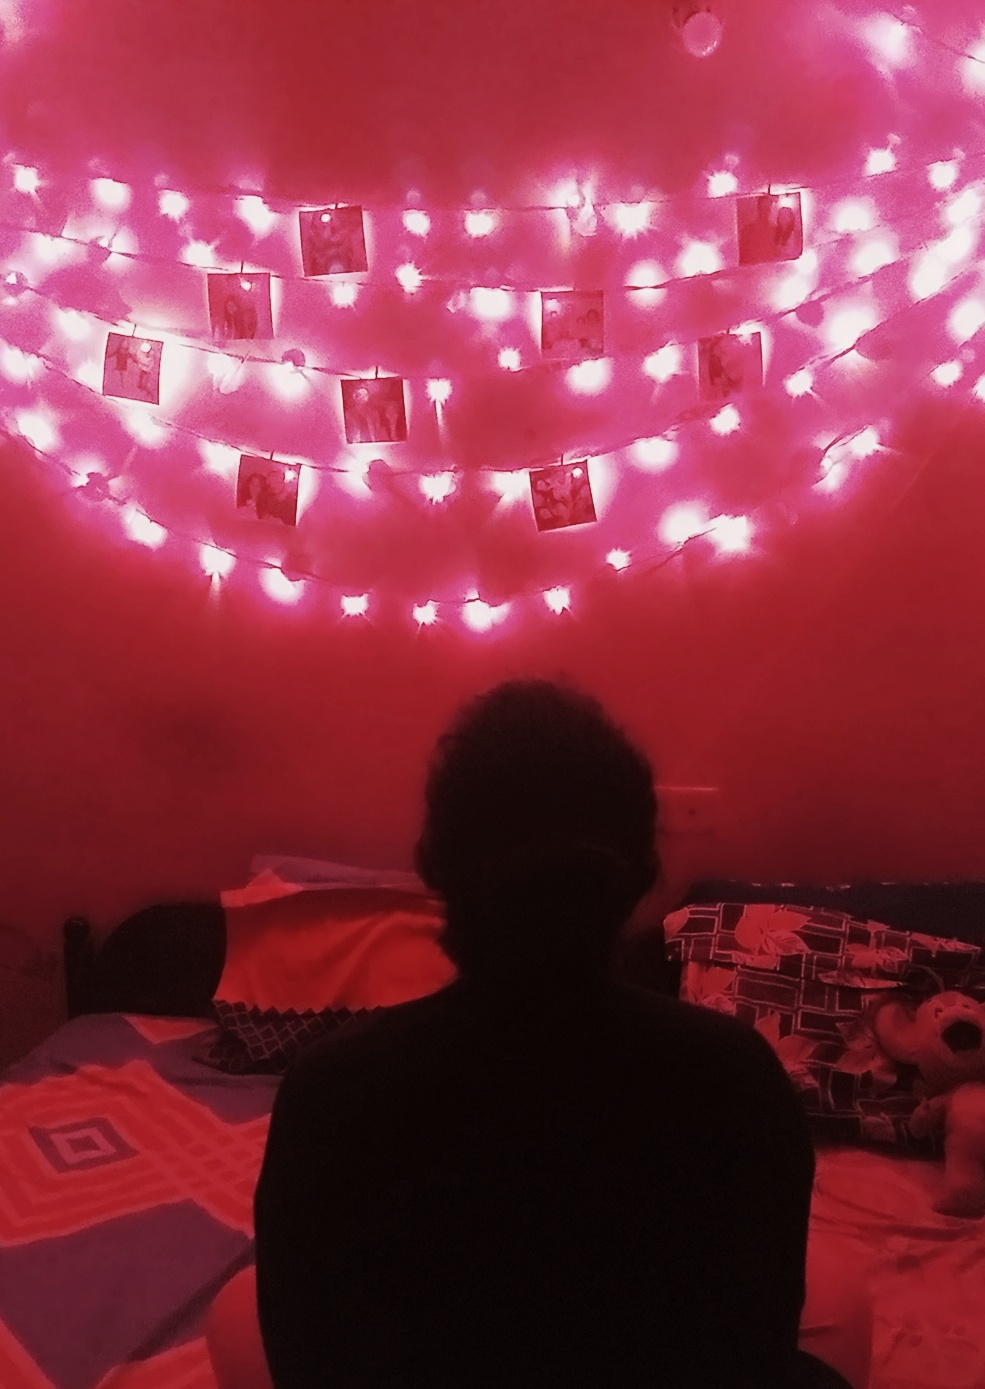 View of my home every night where the bright pink fairy lights decorations bring a tranquilizing feel.